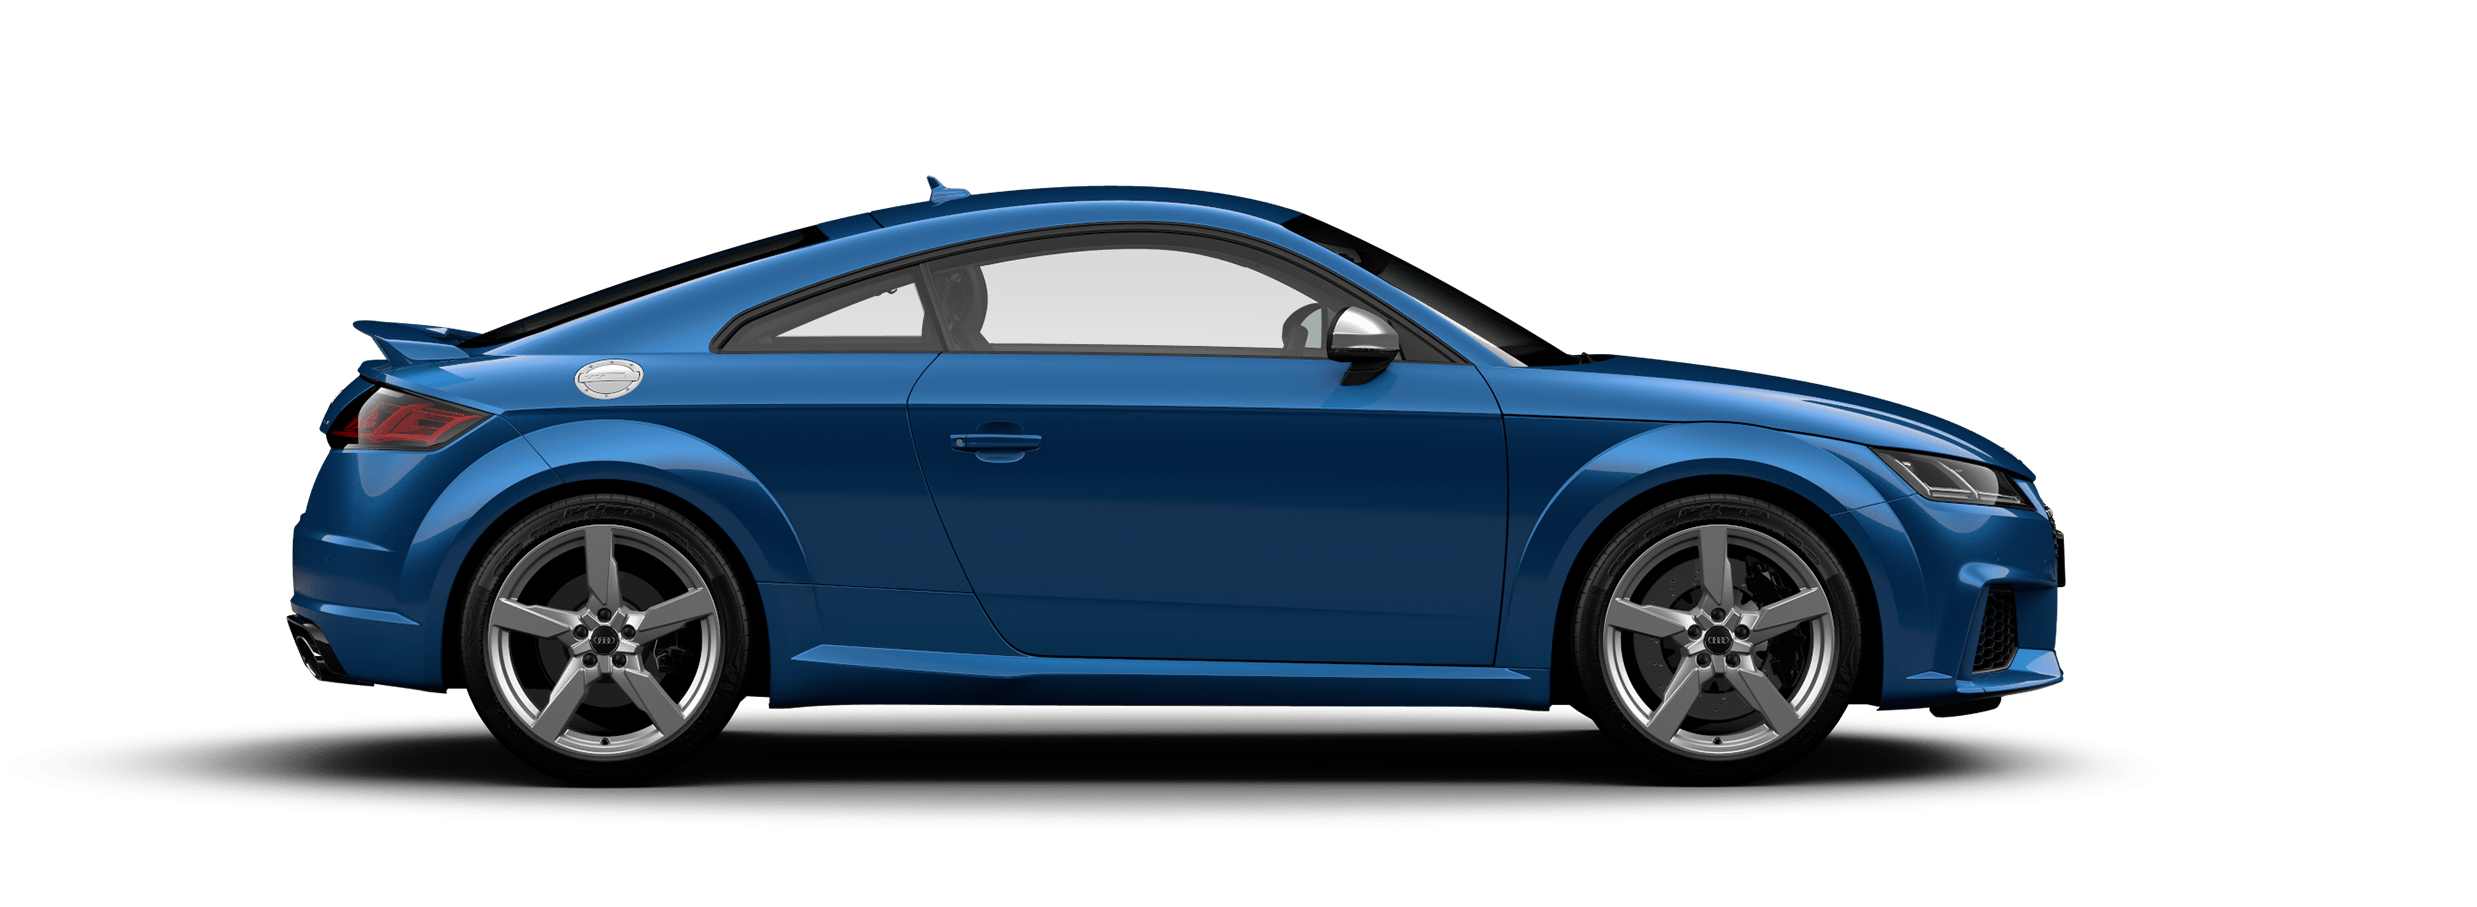 https://bluesky-cogcms.cdn.imgeng.in/media/62373/tt-rs-coupe.png